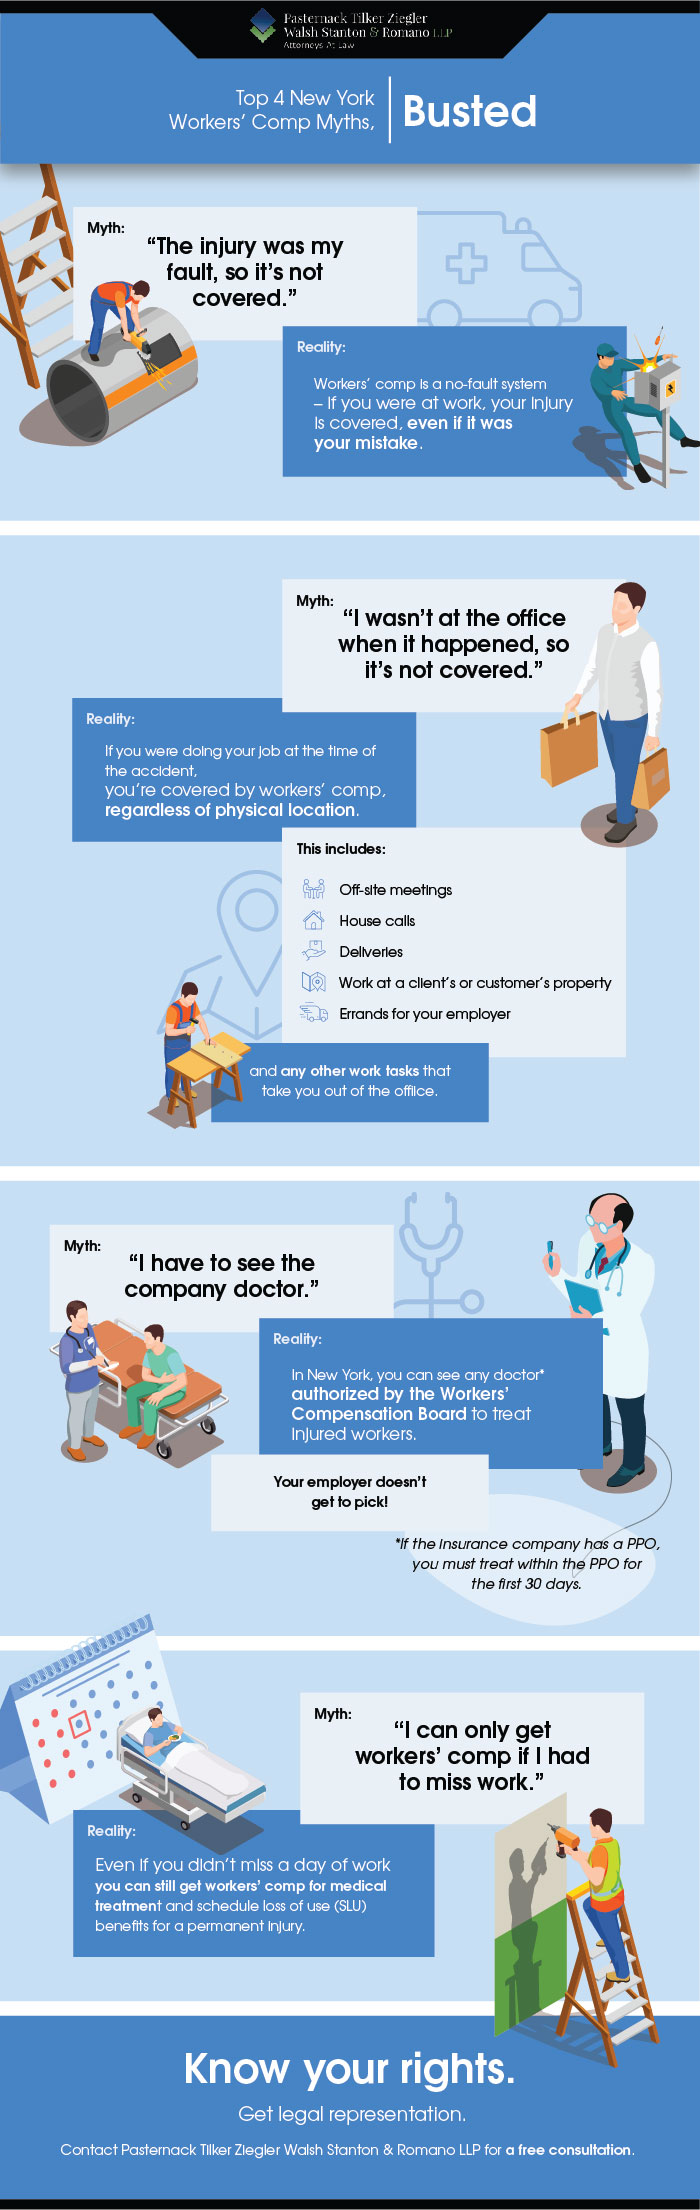 Workers' Compensation Myths and Misconceptions infographic